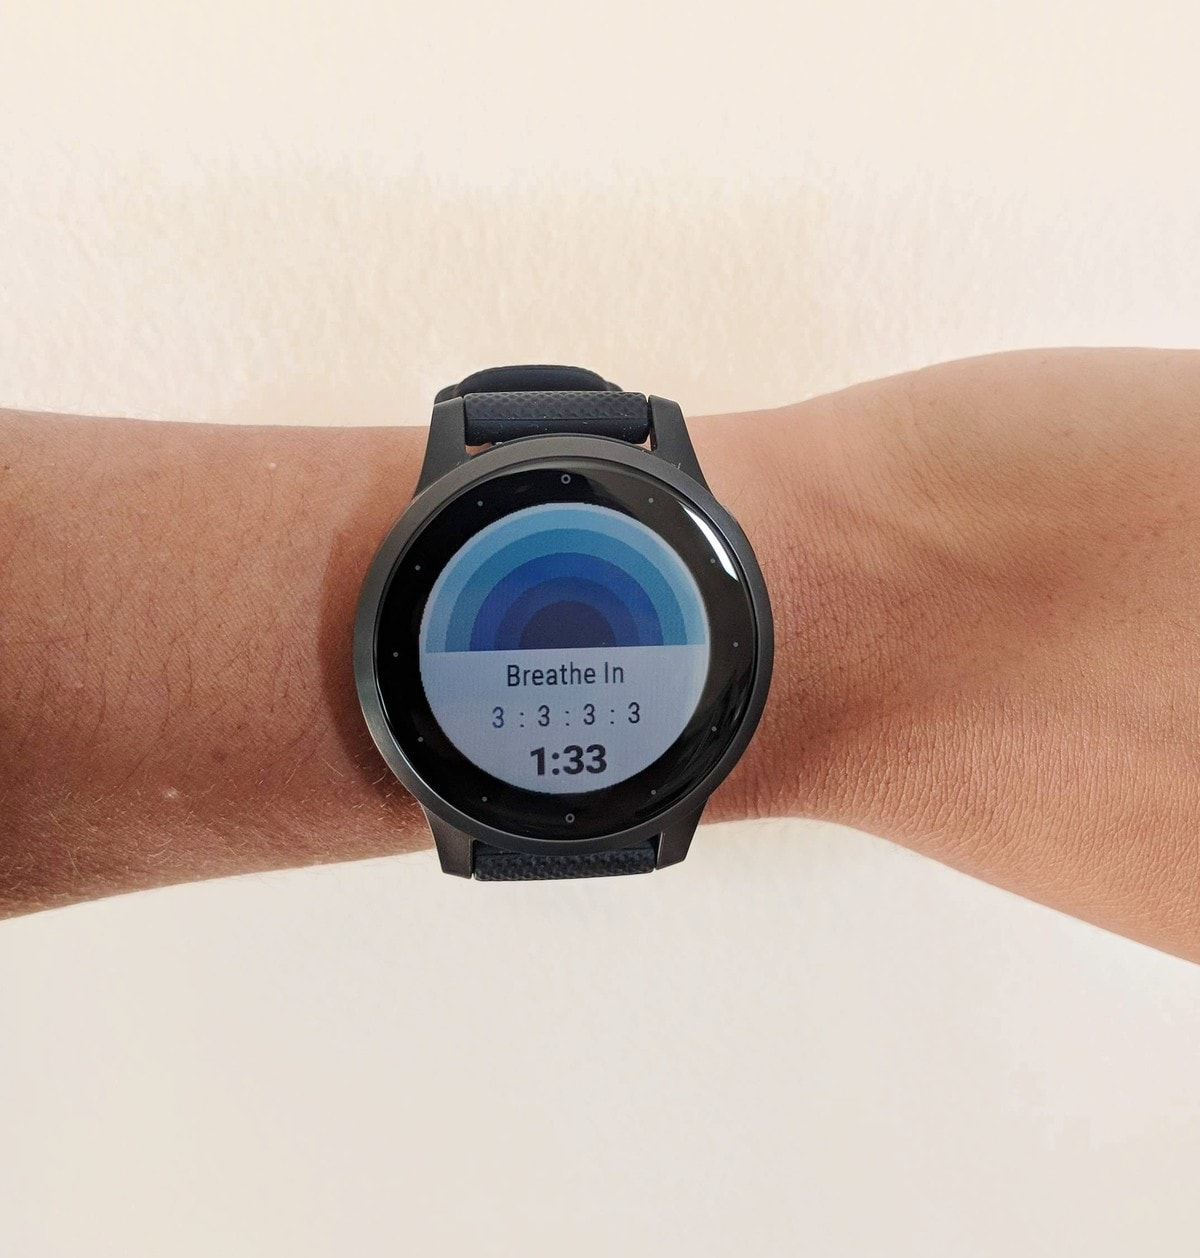 garmin vivoactive 4s display